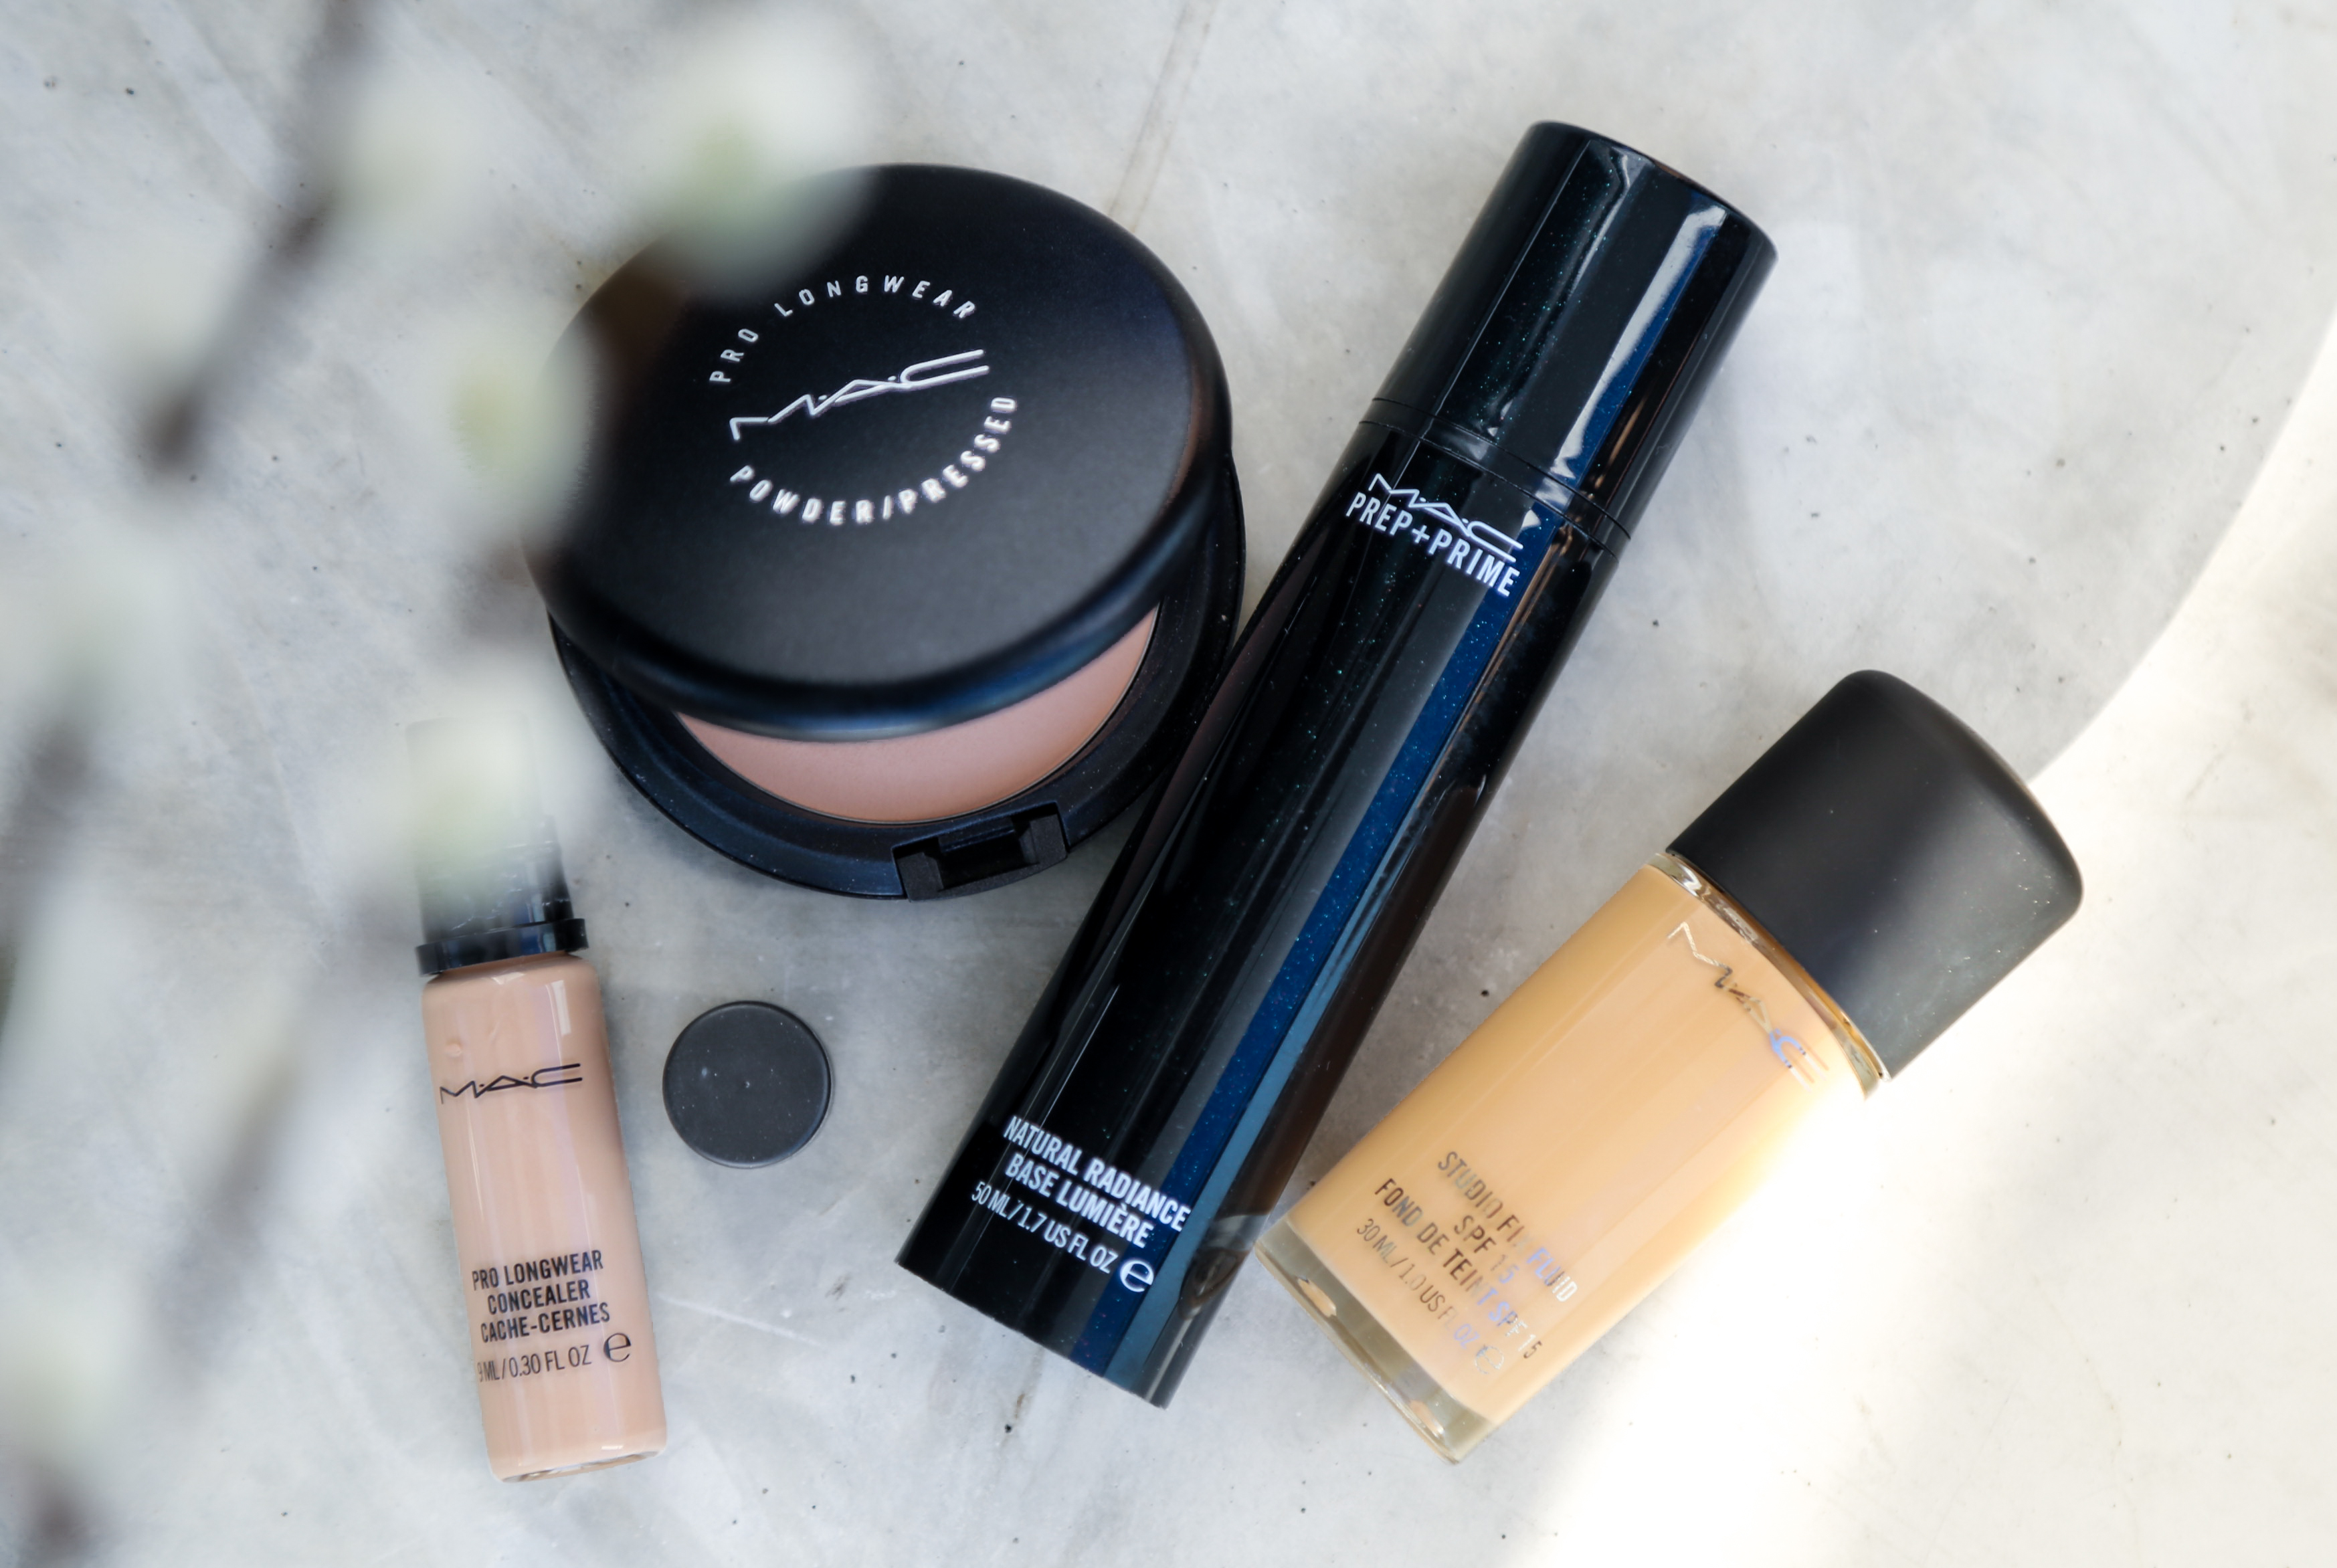 Beauty Routine mit MAC Produkten Jennifer Test Kosmetik Cosmetics Concealer Powder Puder Foundation Schminken PepperAndGold PrepAndPrime ProLongwear